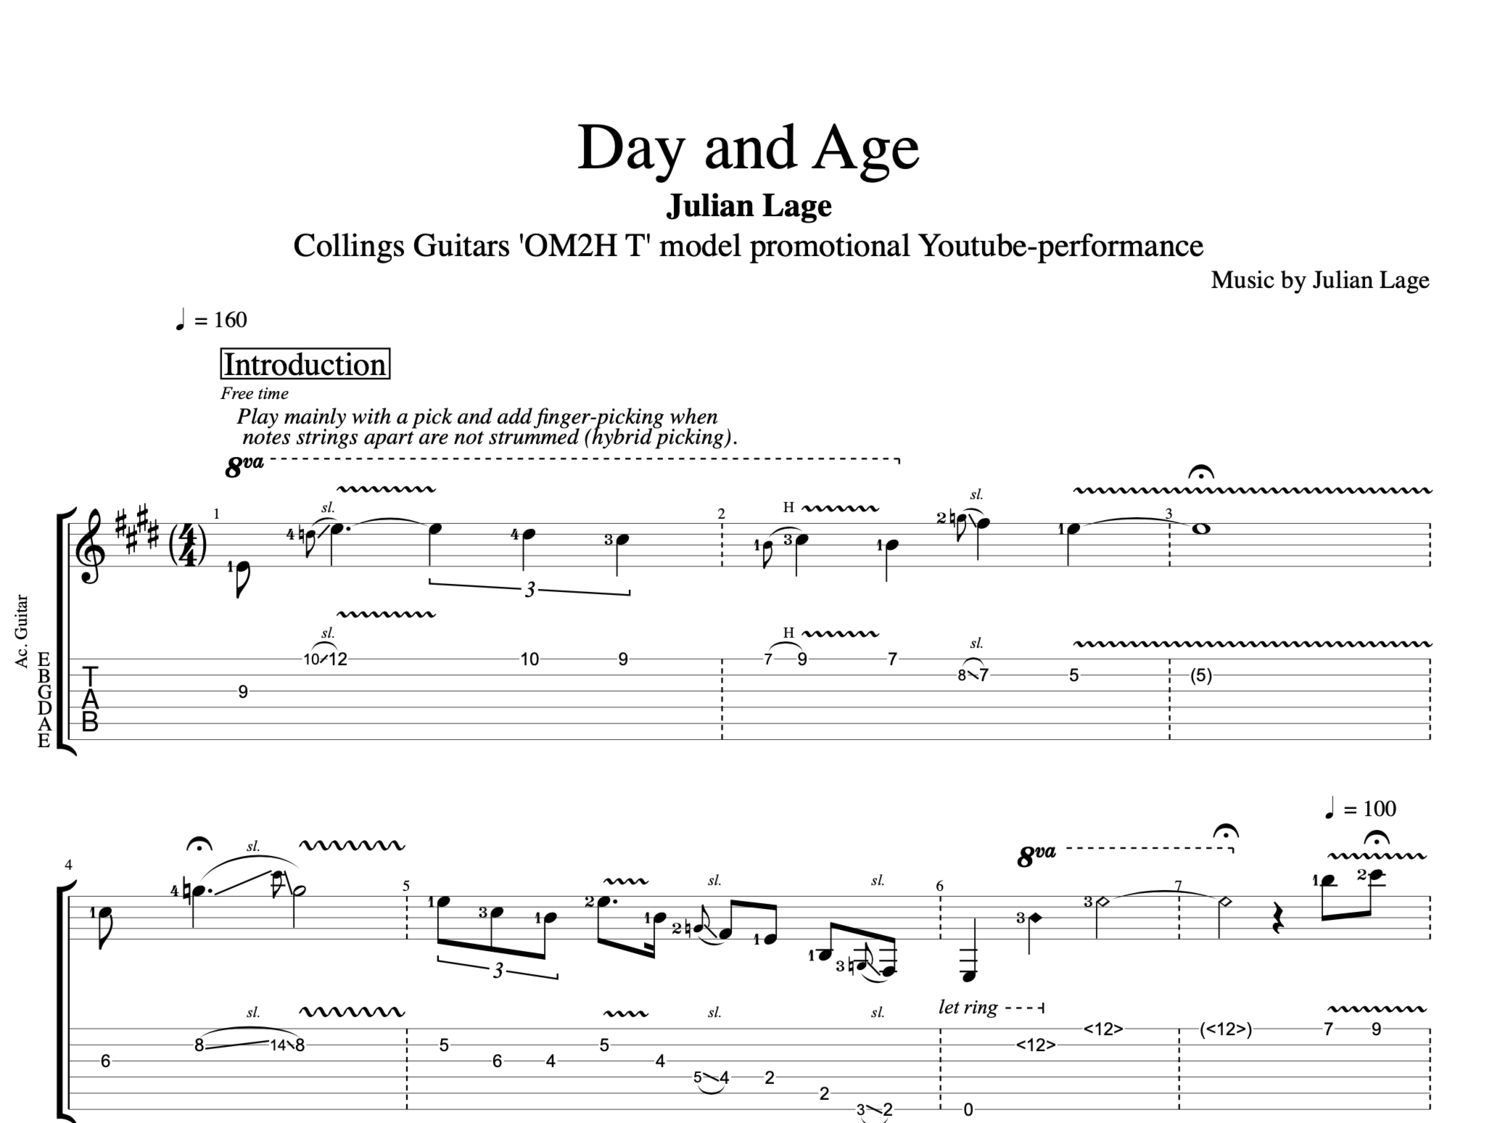 Day And Age Collings Guitars Omh2 T Youtube Promo By Julian